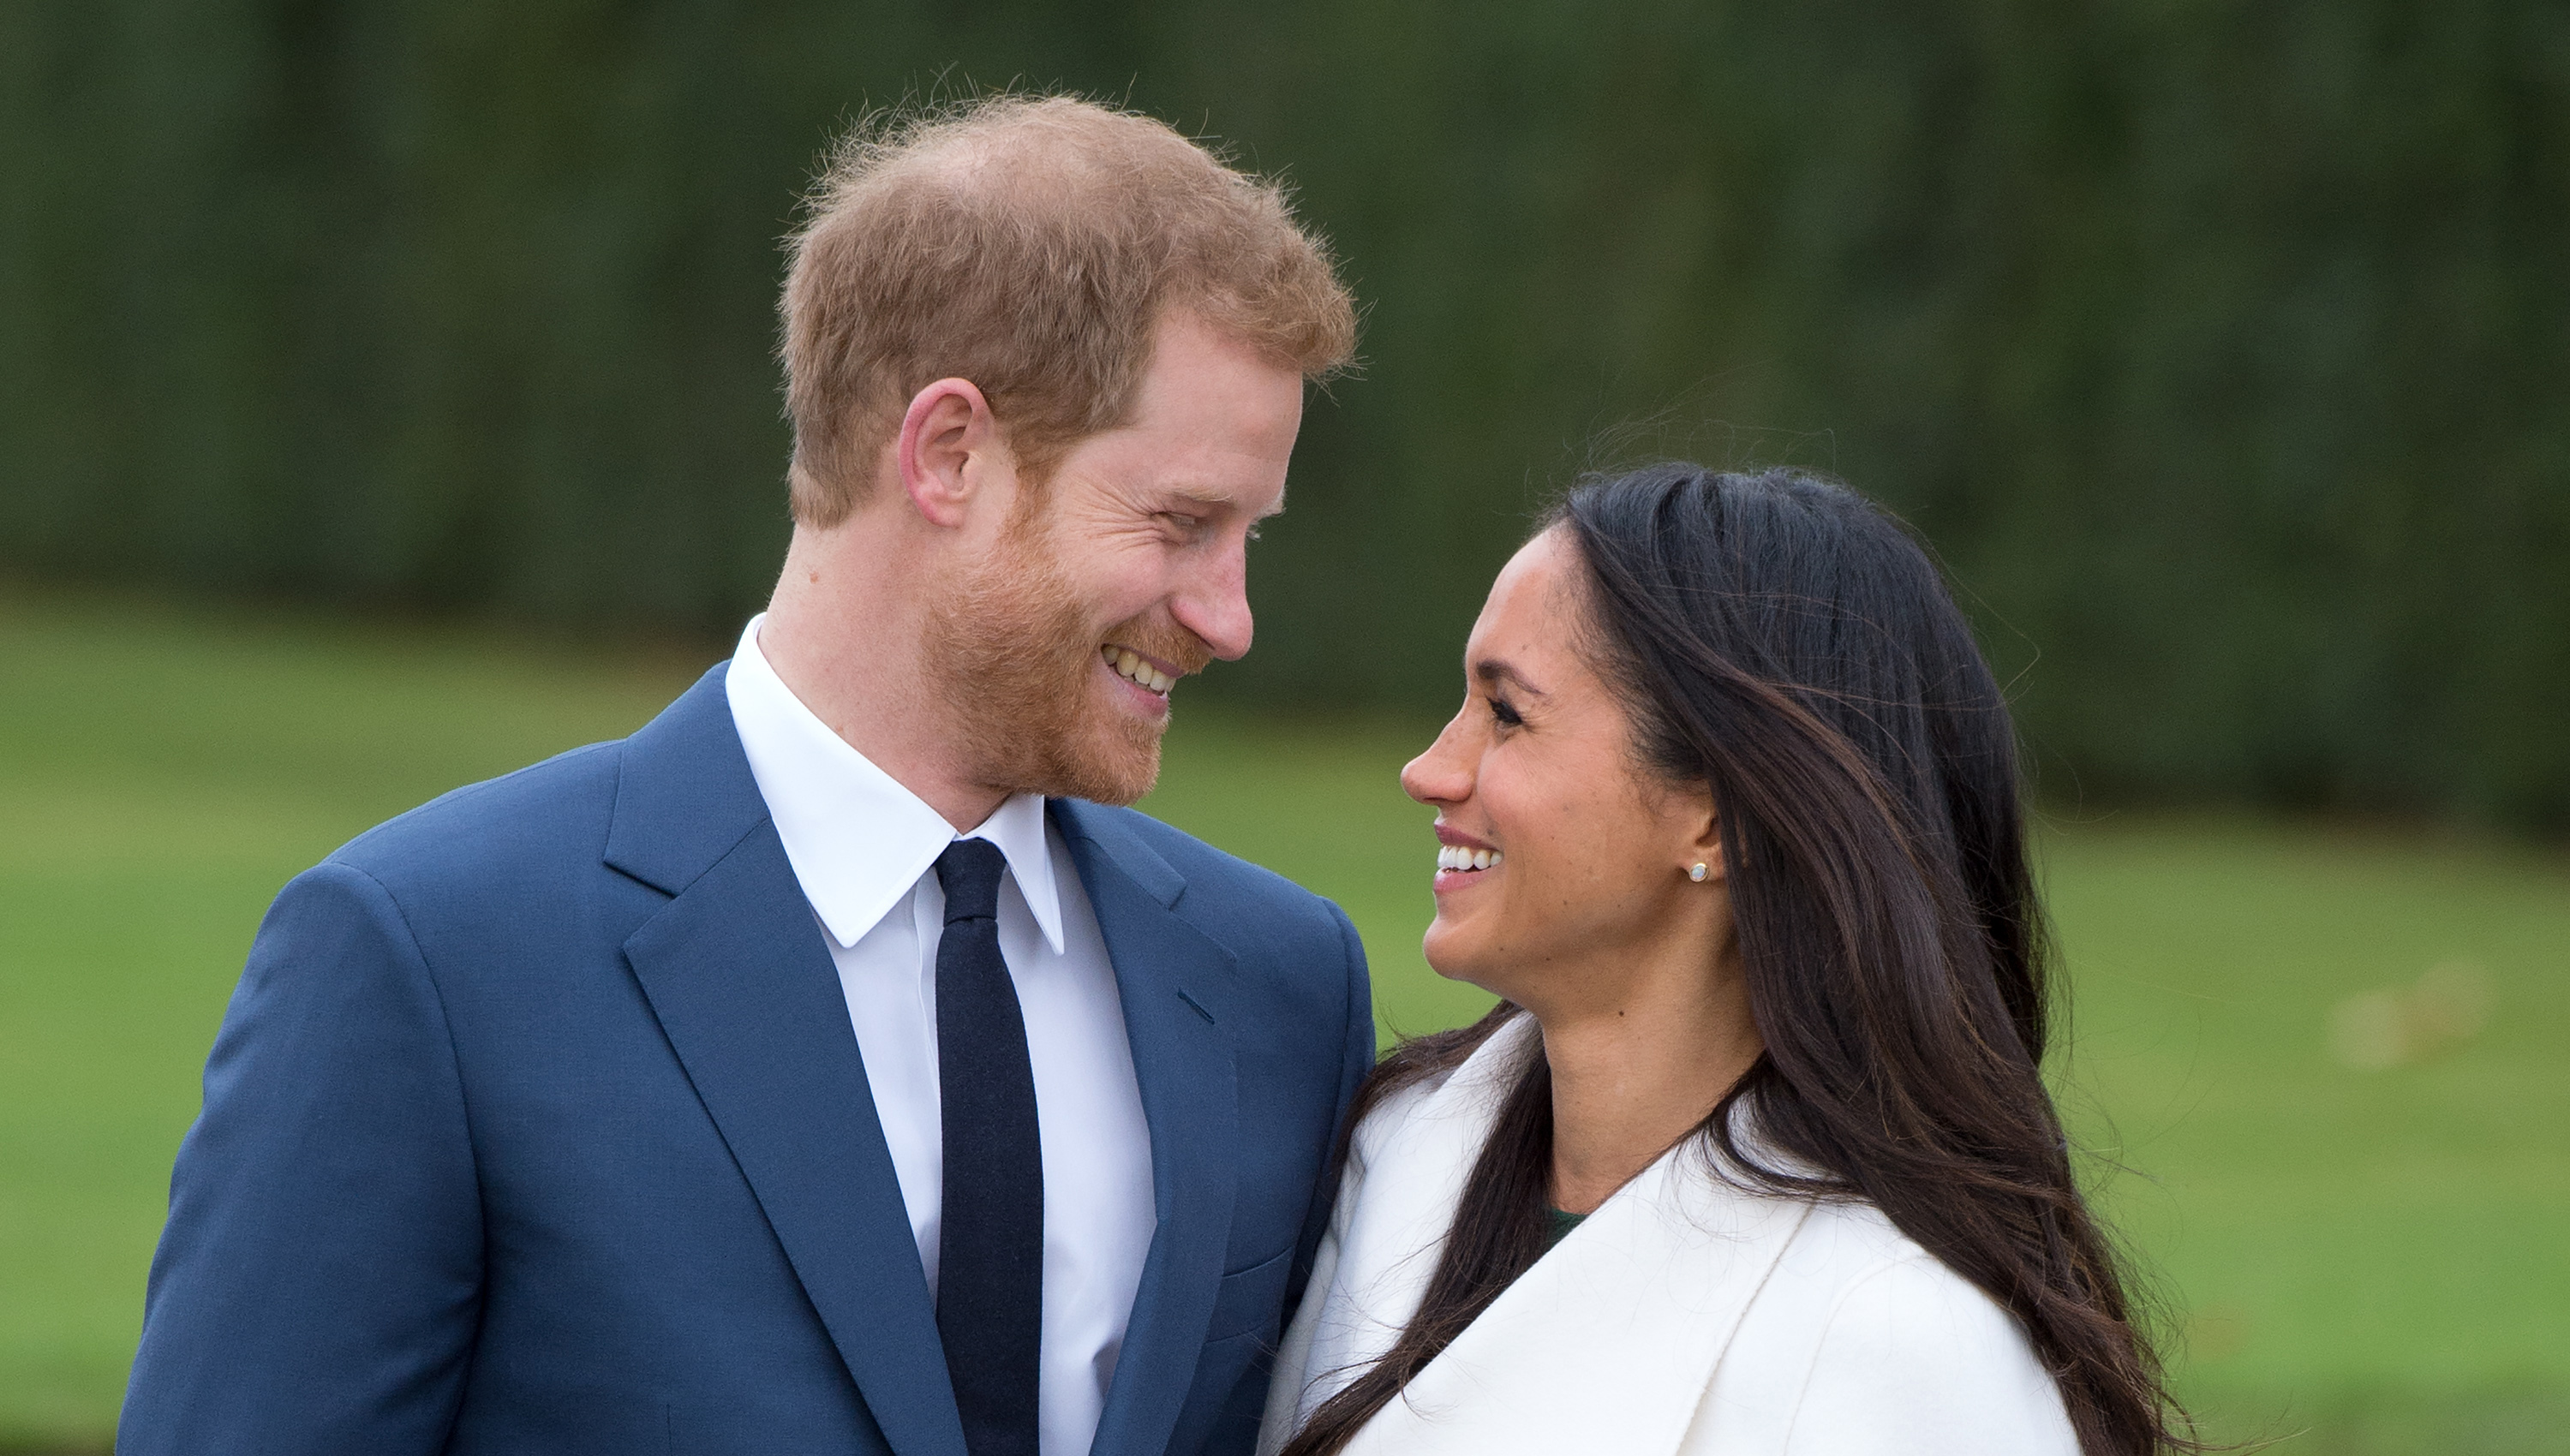 When's the Royal Wedding of Prince Harry & Meghan Markle ...